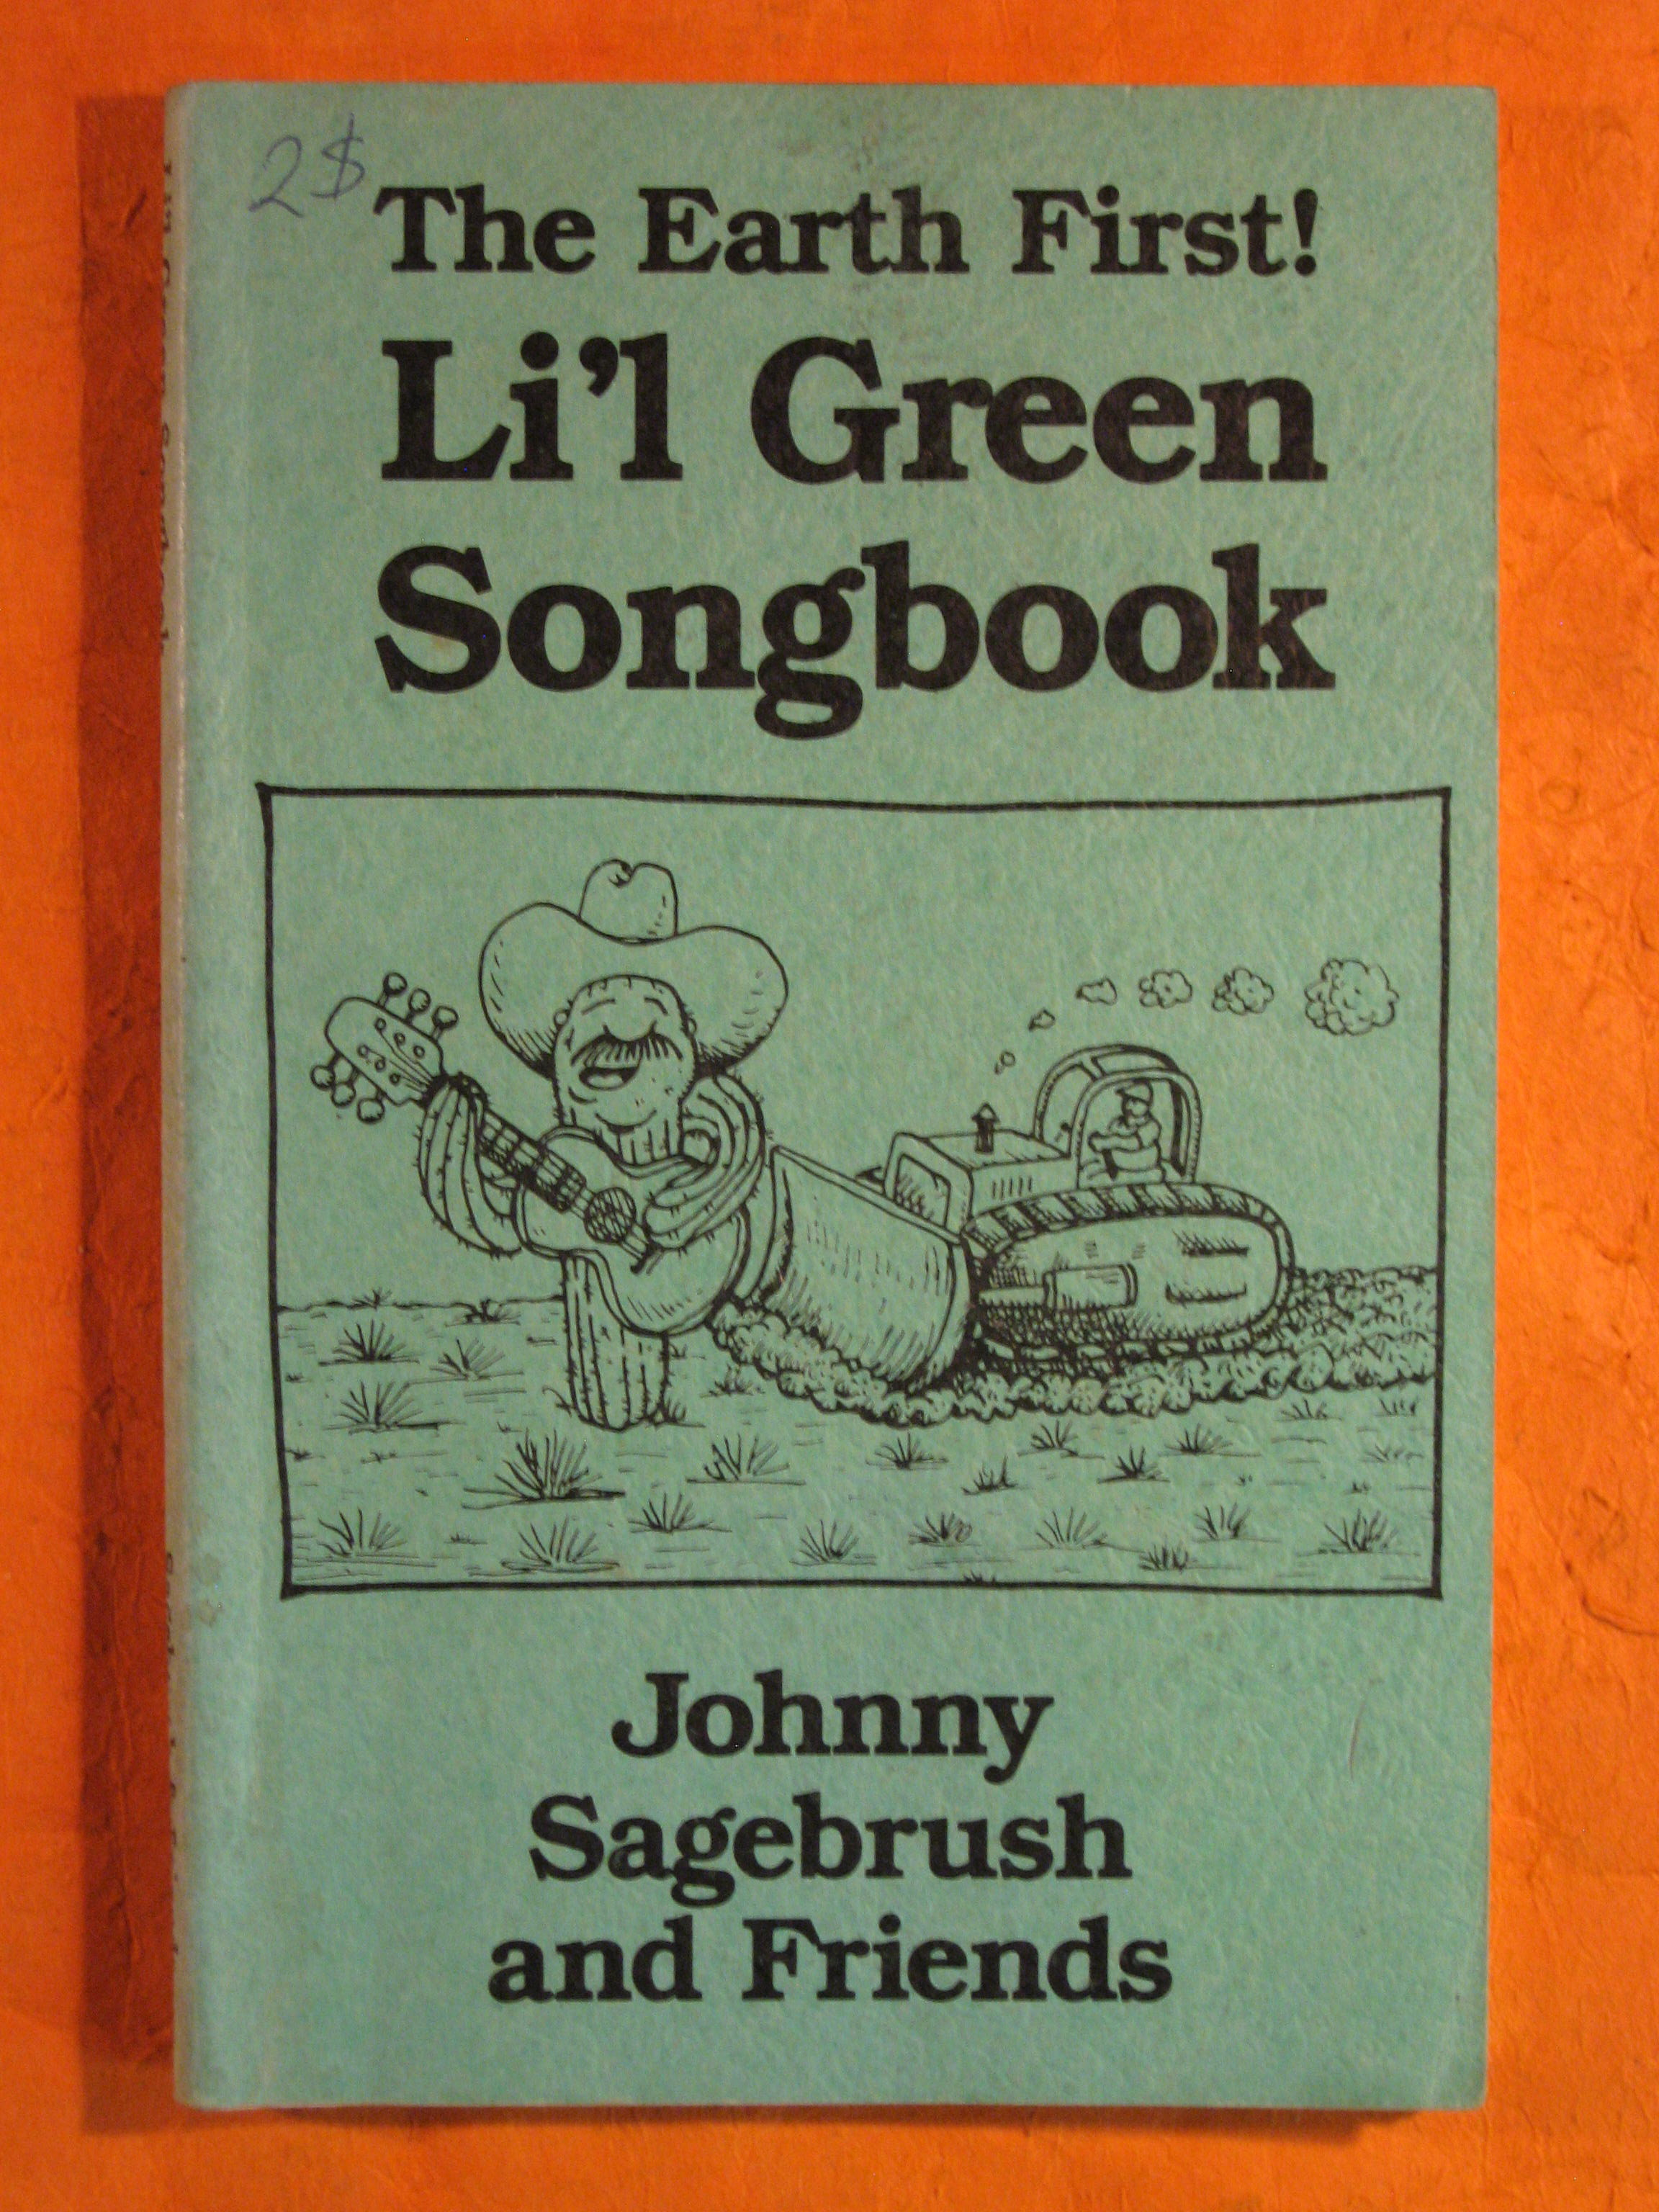 The Earth First! Li'L Green Songbook